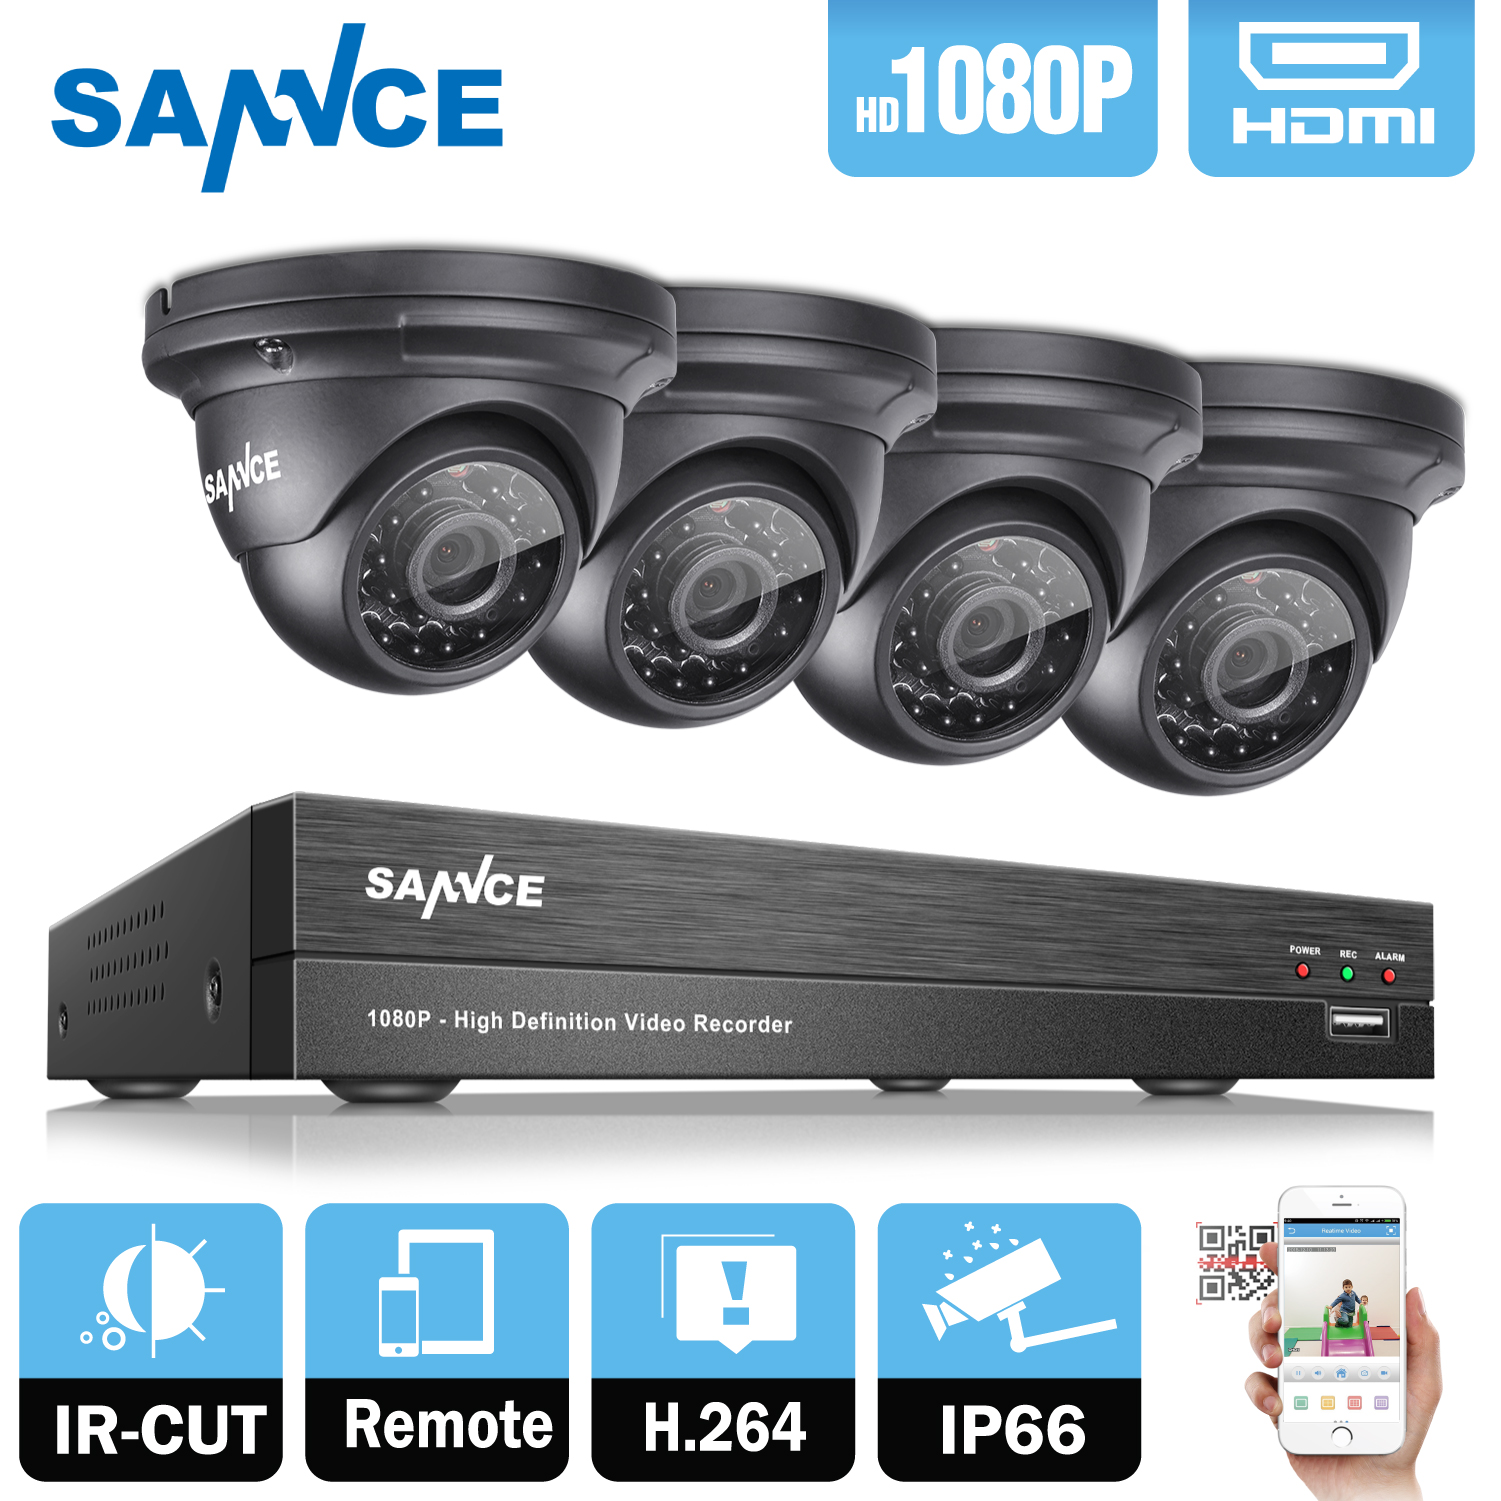 SANNCE 8CH 2MP 1080P HD DVR AHD Surveillance Kit 4PCS 1080P 2MP Dome Home Security Camera CCTV System OvifSANNCE 8CH 2MP 1080P HD DVR AHD Surveillance Kit 4PCS 1080P 2MP Dome Home Security Camera CCTV System Ovif